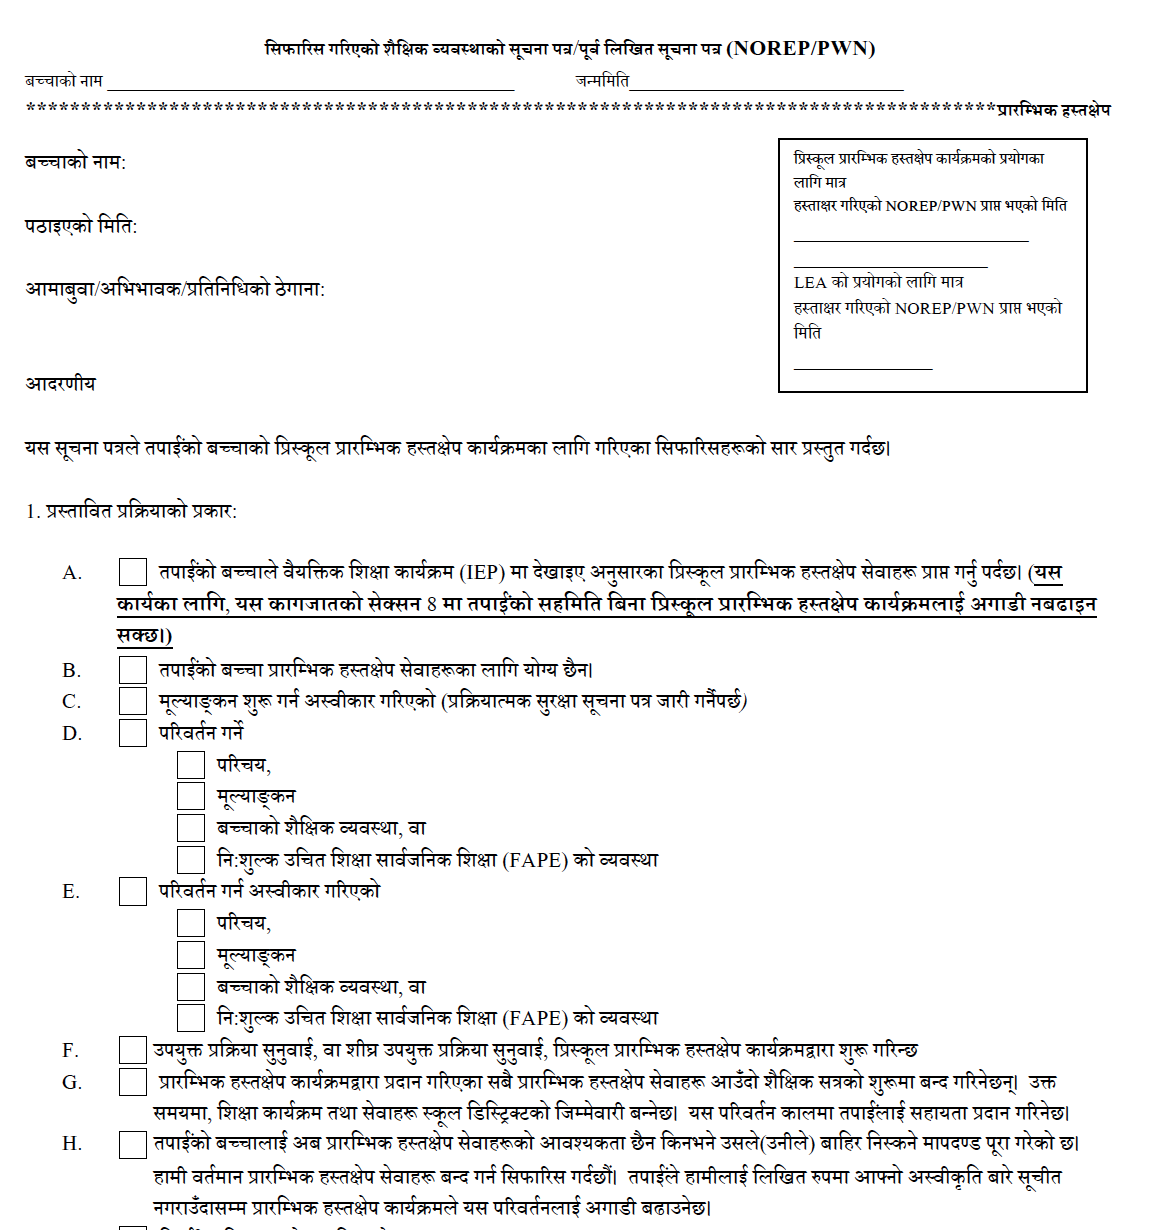 NOTICE OF RECOMMENDED EDUCATIONAL PLACEMENT/PRIOR WRITTEN NOTICE (NOREP/PWN) - Preschool Early Intervention Nepali